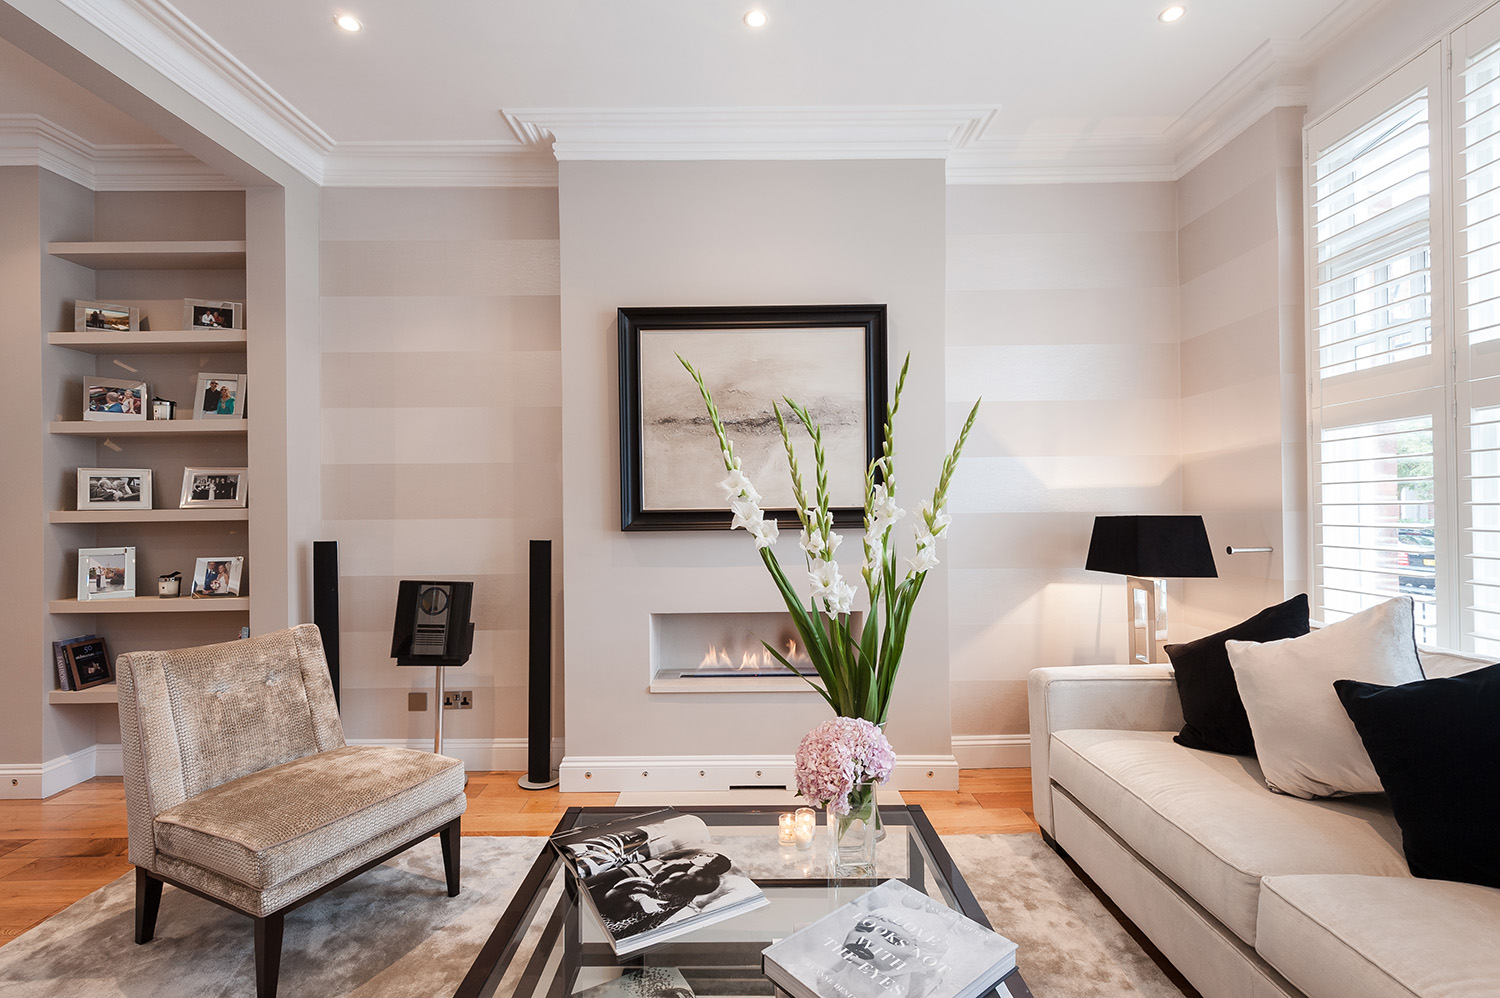 Fulham house sw6 design box london luxury interior for Design in a box interior design